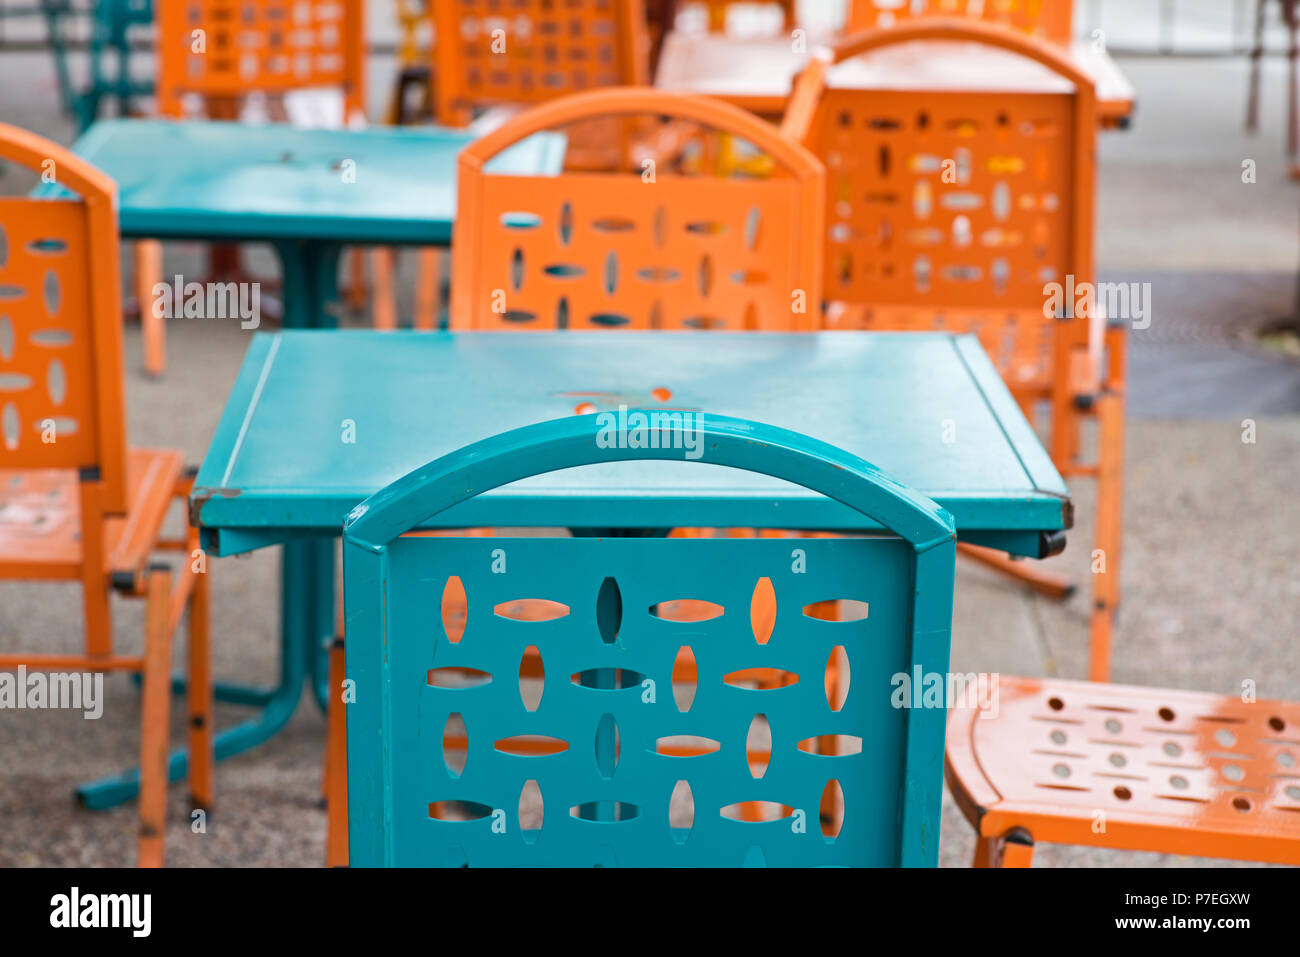 Commercial Outdoor Colorful Dining Furniture Restaurant Metal Patio